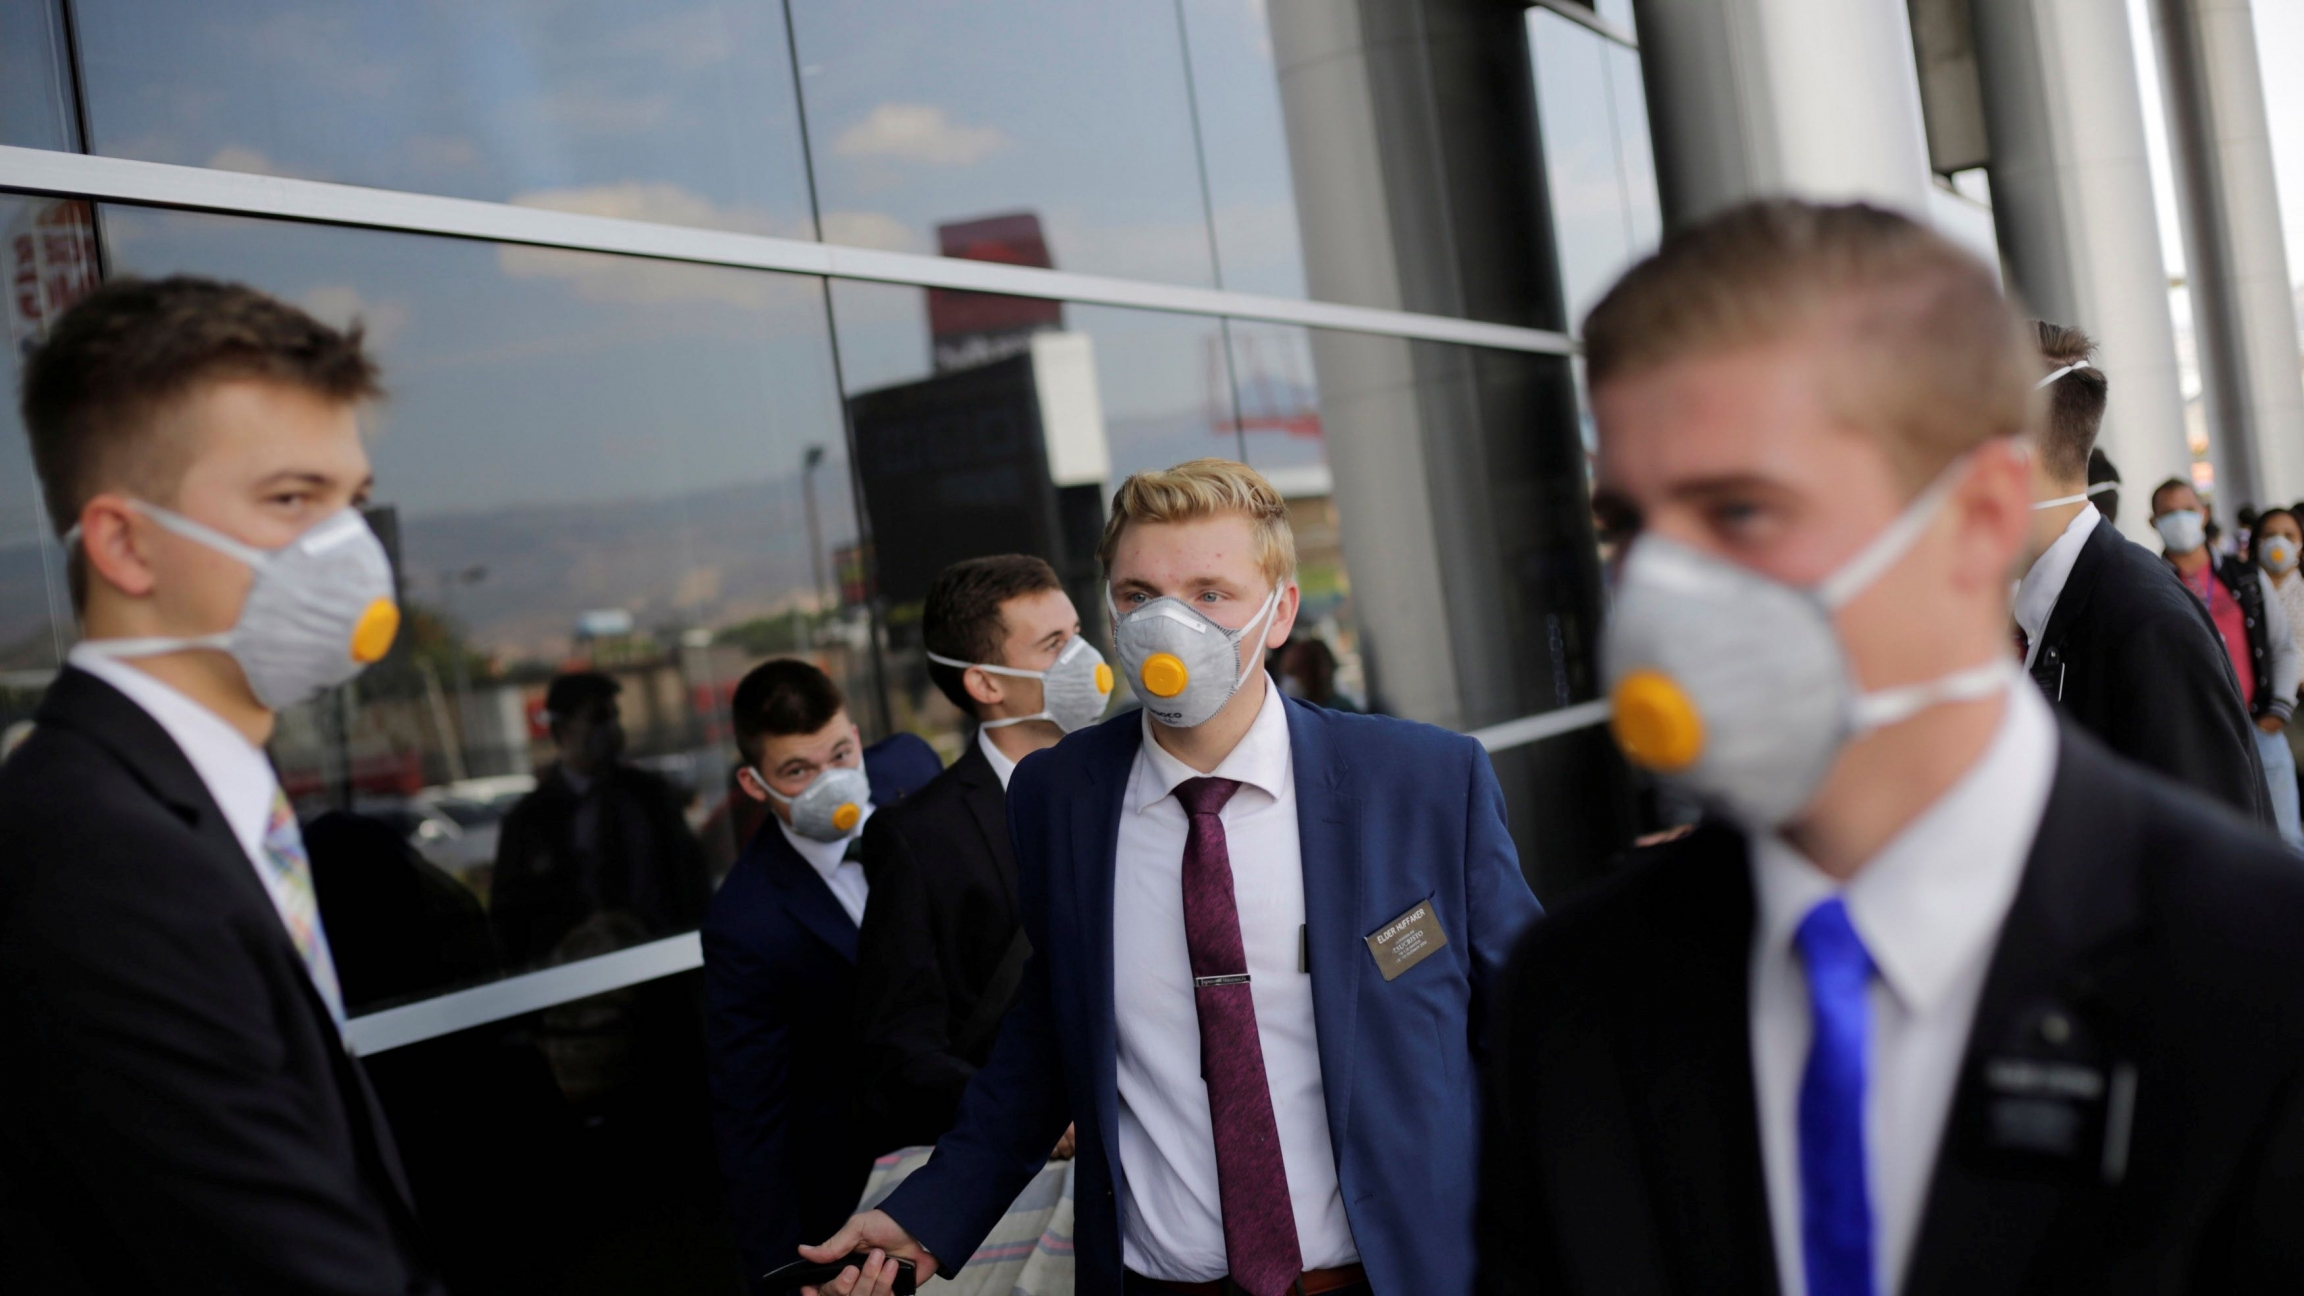 US members of The Church of Jesus Christ of Latter-day Saints, wearing protective masks, gather at Toncontin International airport before heading home, as the coronavirus disease (COVID-19) outbreak continues, in Tegucigalpa, Honduras, March 29, 2020.